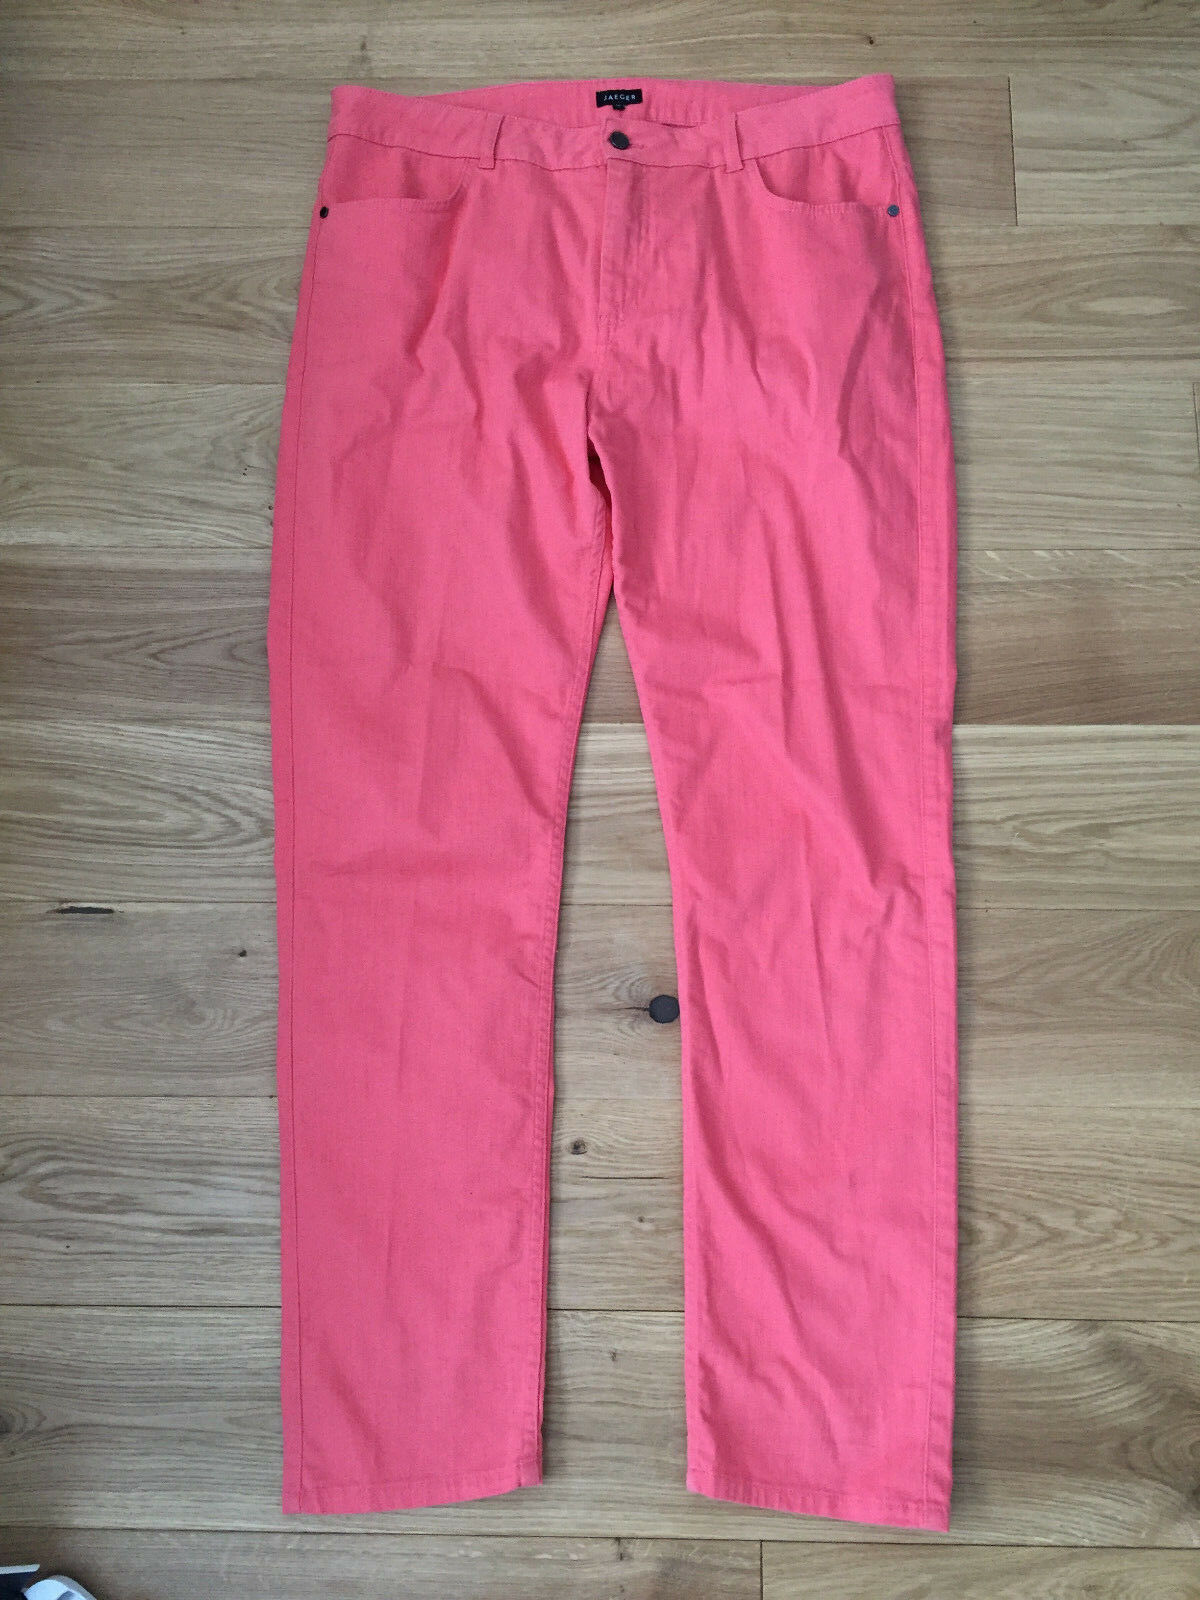 Coral pink straight leg jeans, size 16, Jaeger